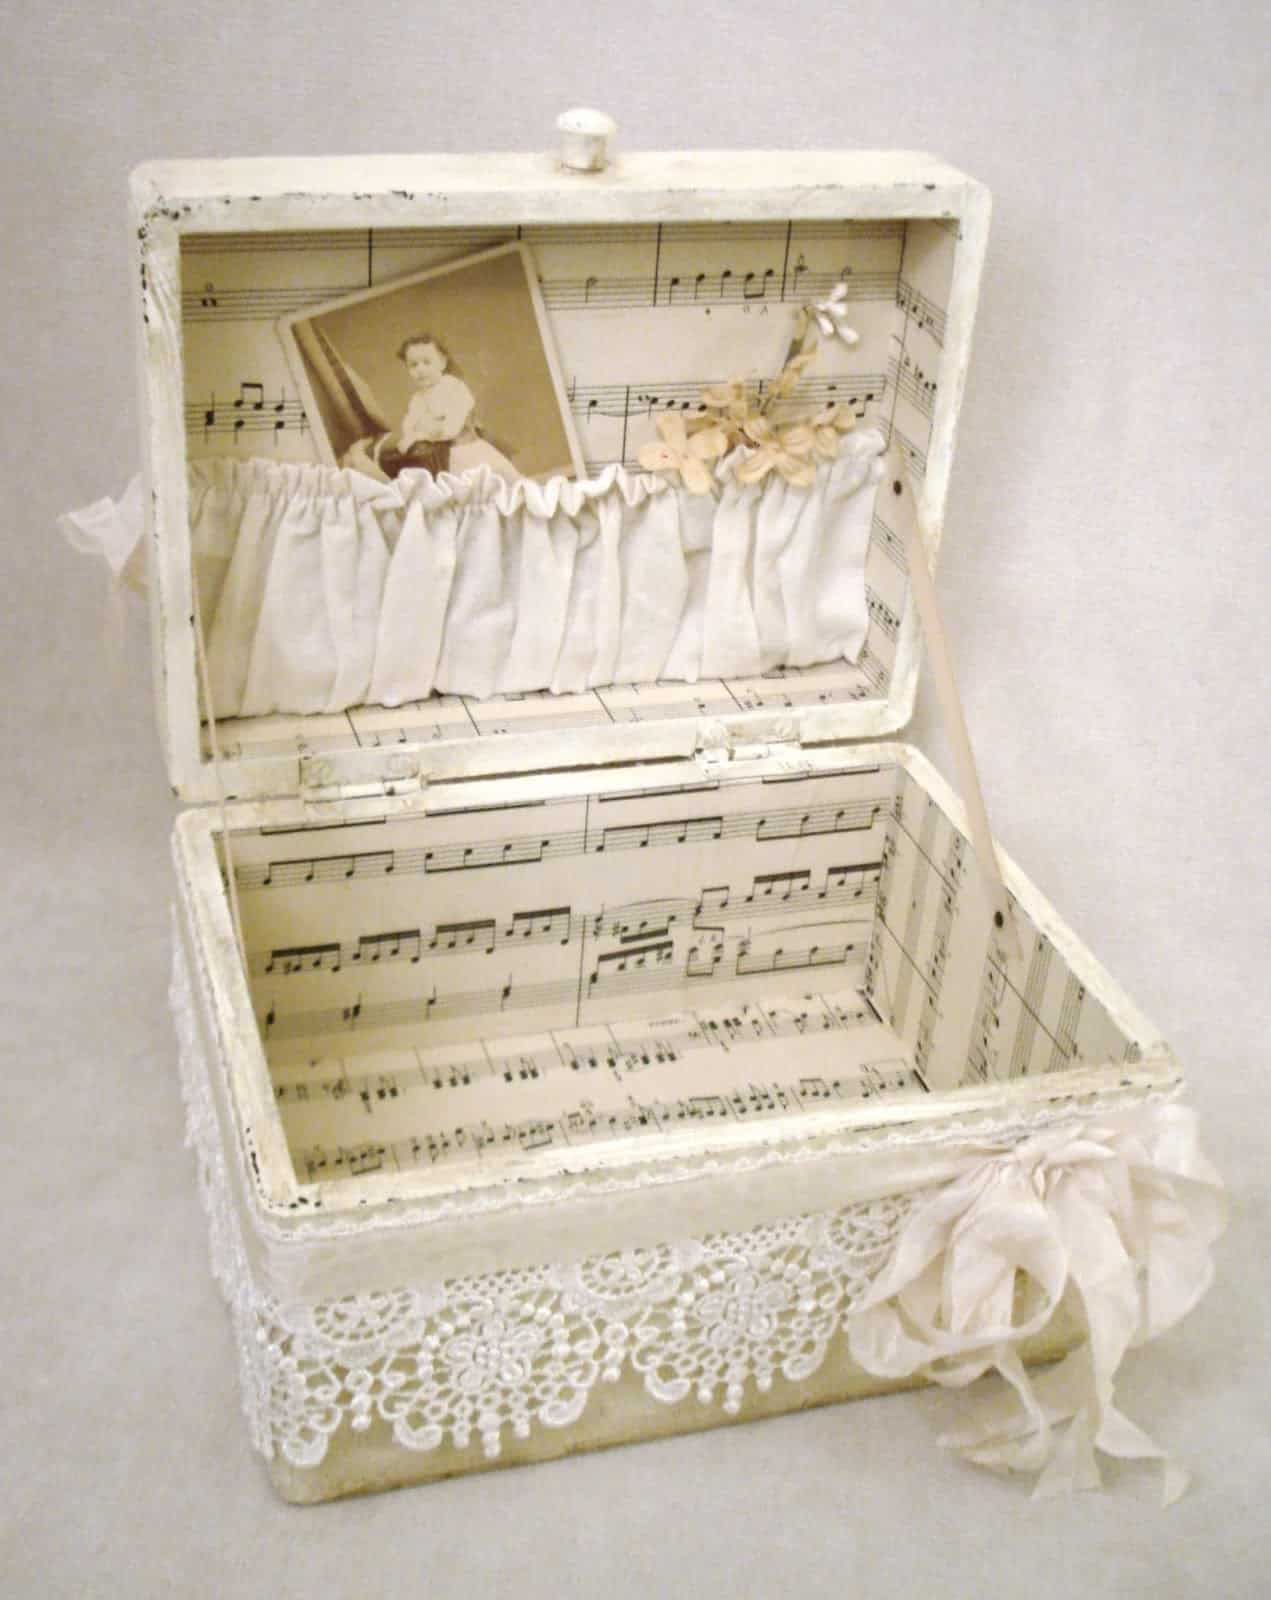 Lace trinket box with a sheet music lining